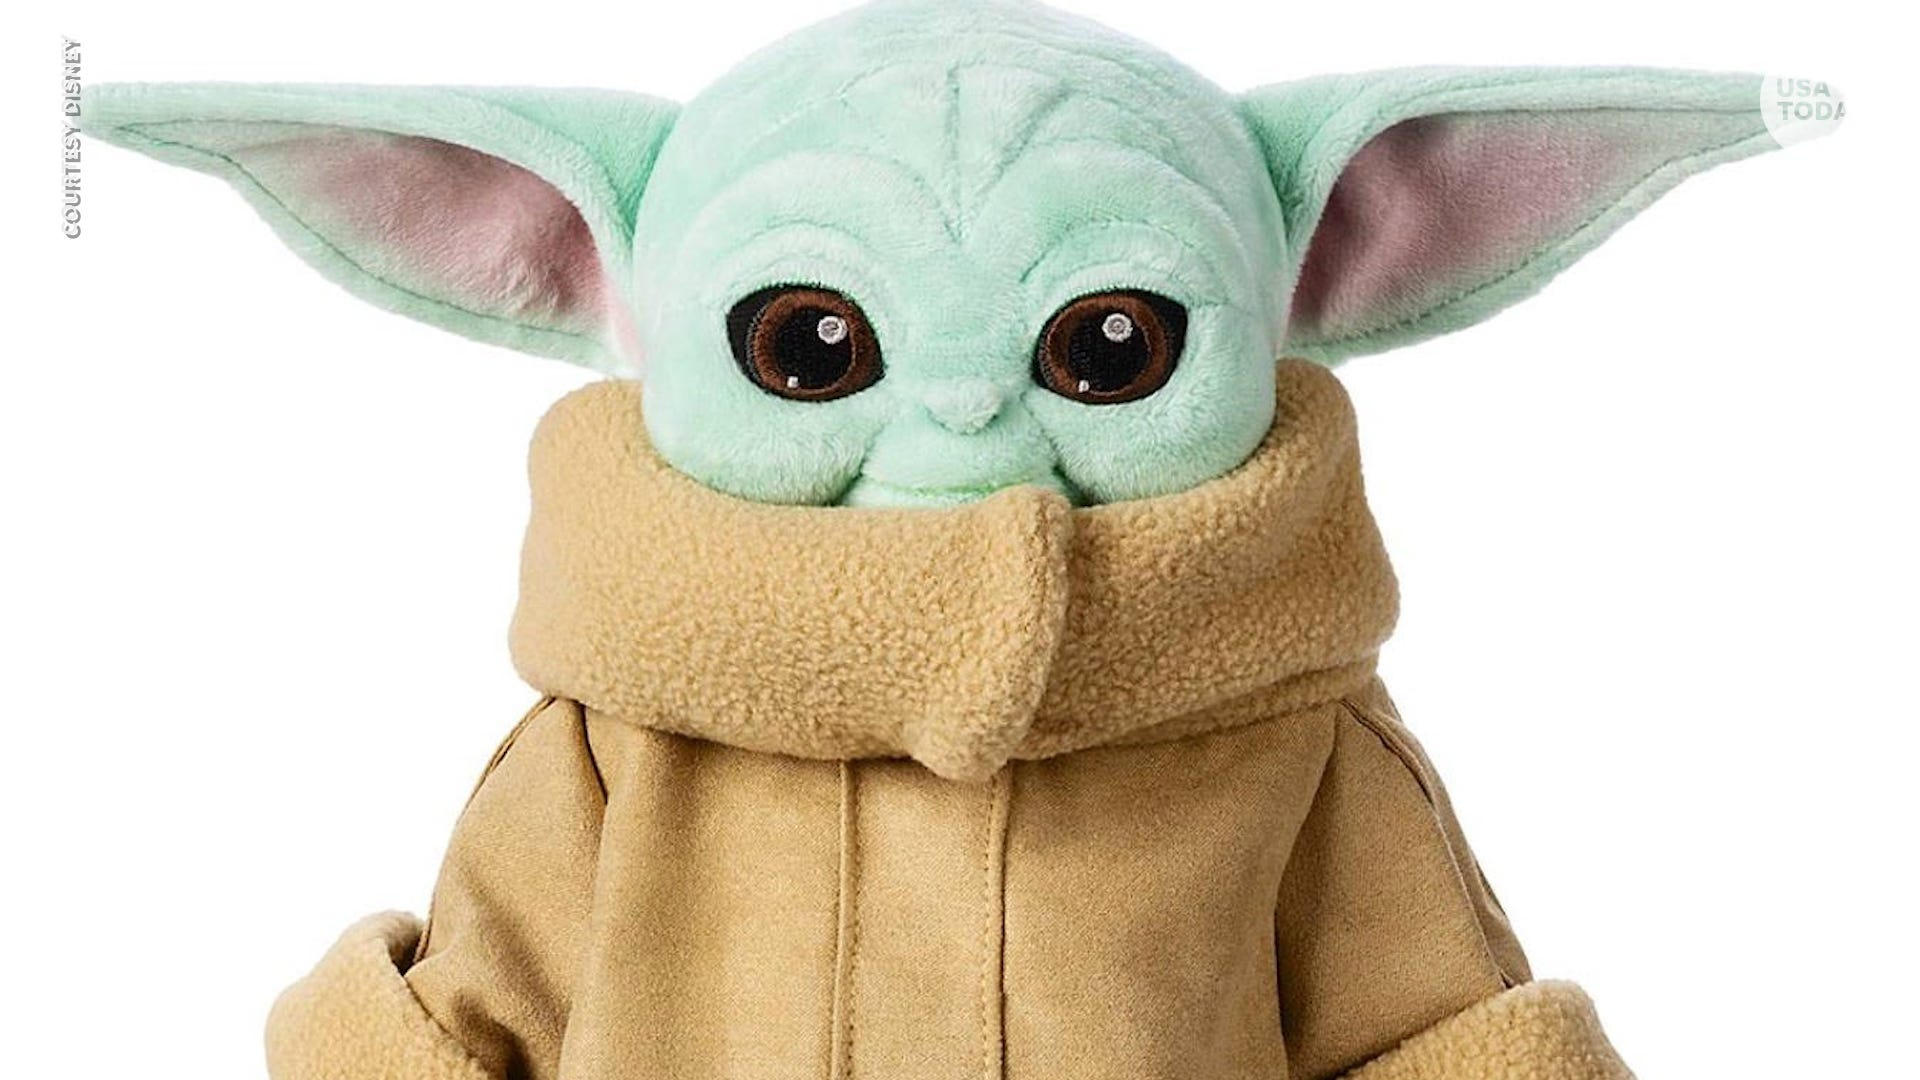 Disney appears to be cracking down on Baby Yoda knockoffs